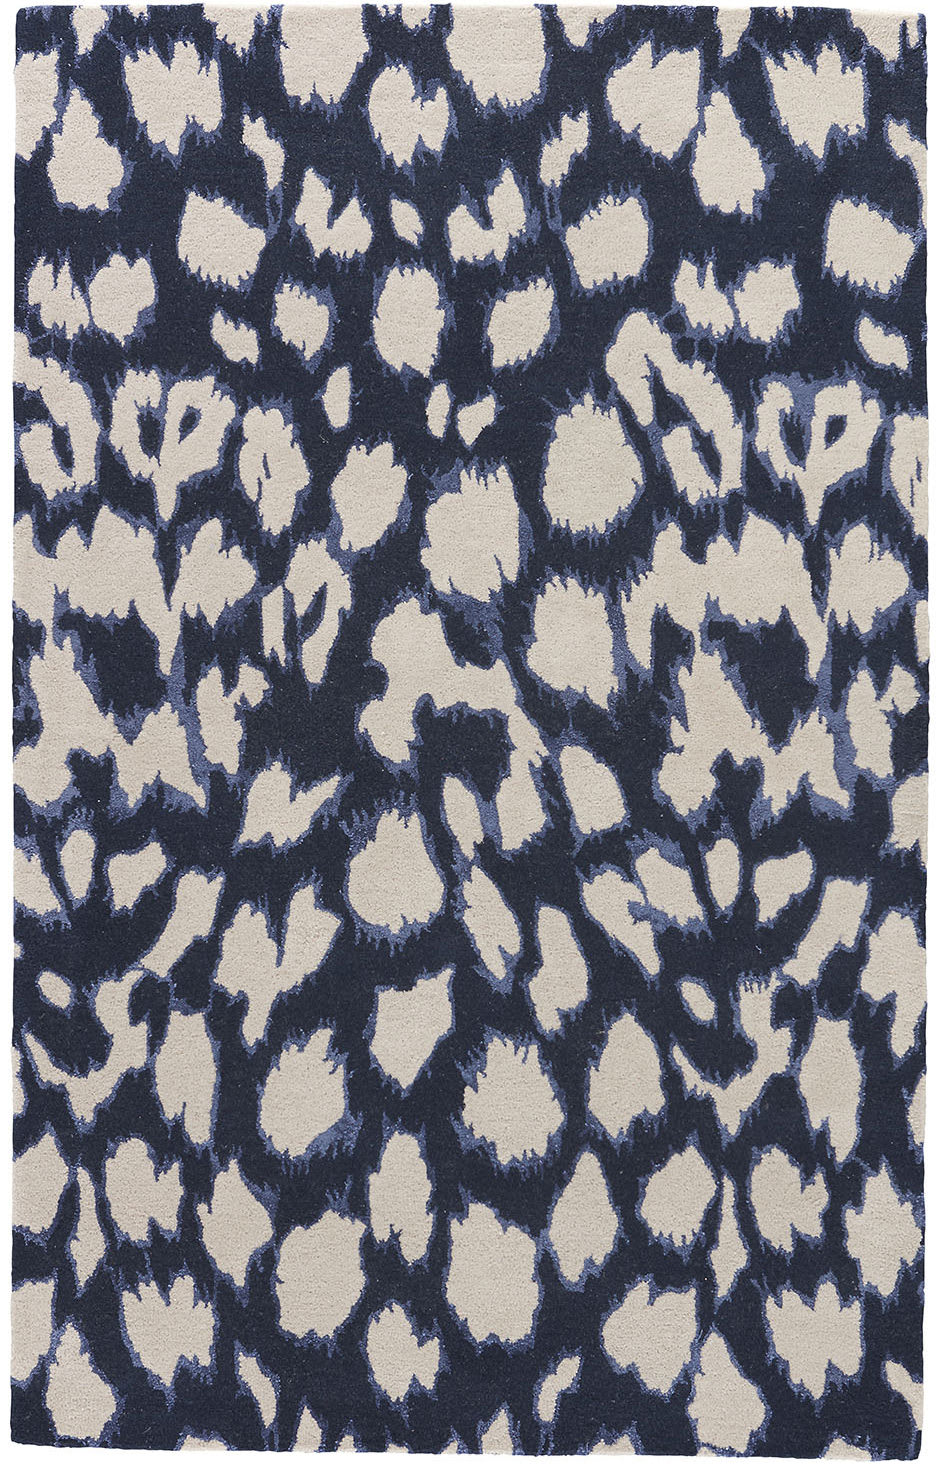 Jaipur Living Gramercy By Kate Spade New York Leopard Ikat Gkn49 Dark Navy Area Rug - 156009